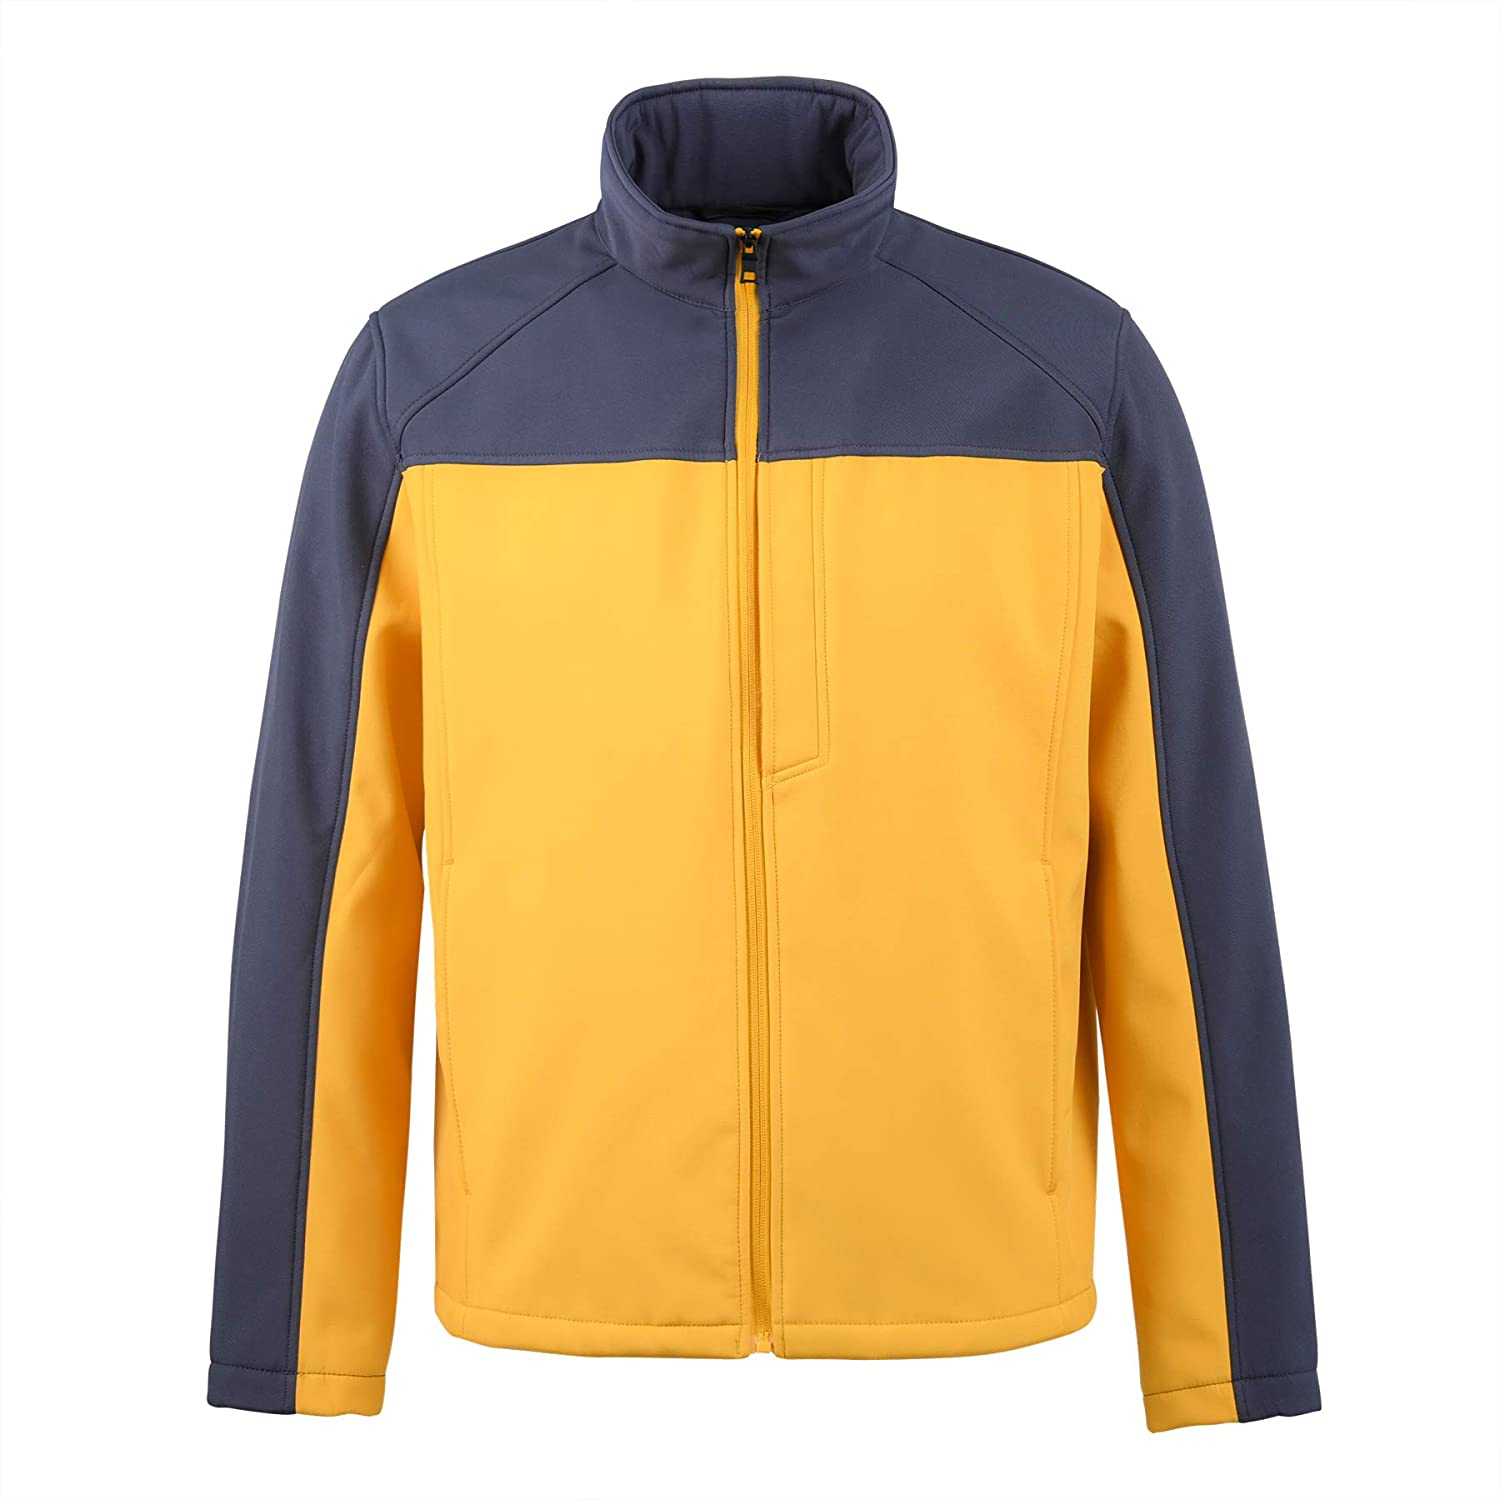 XPOSURZONE Men's Water sold Attention brand out Resistance Softshell Colorblock 3-Layer J